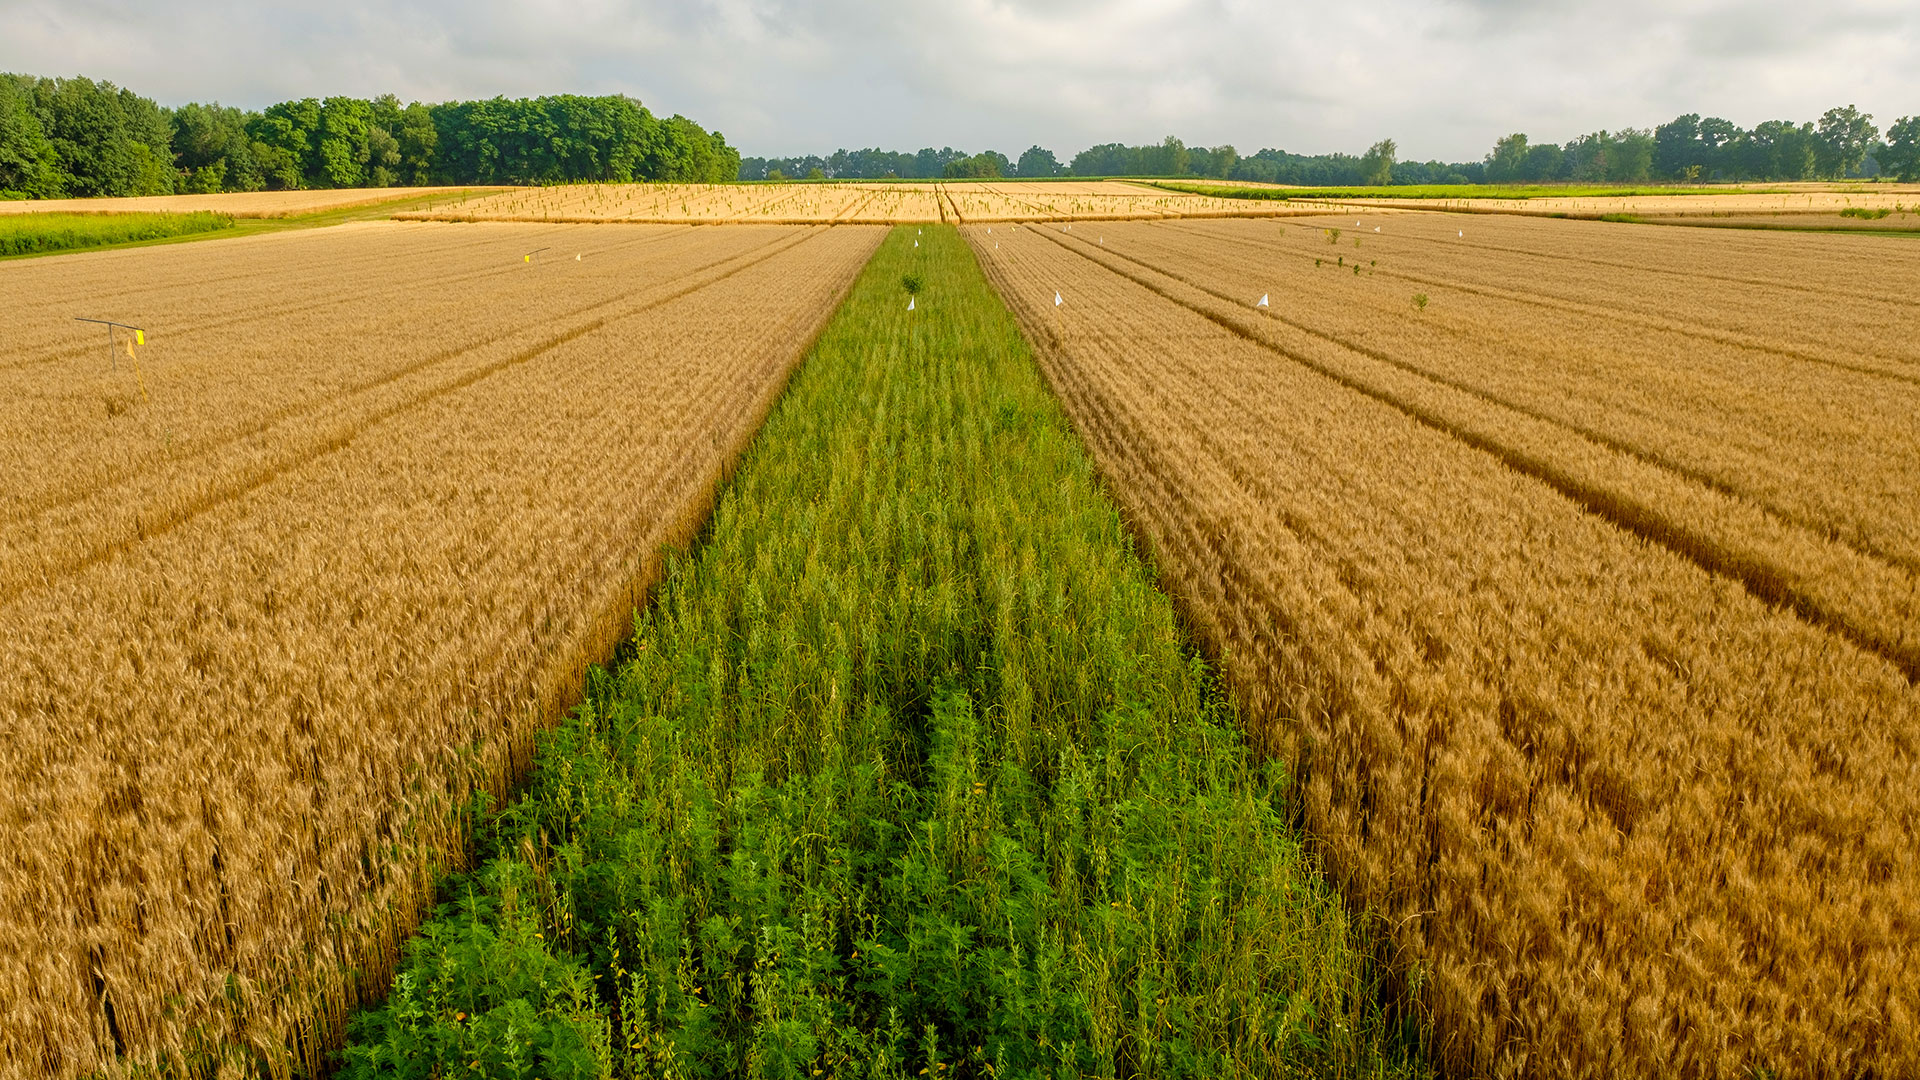 An agricultural field, planted with wheat, featuring a prairie strip running down the center of the photo.